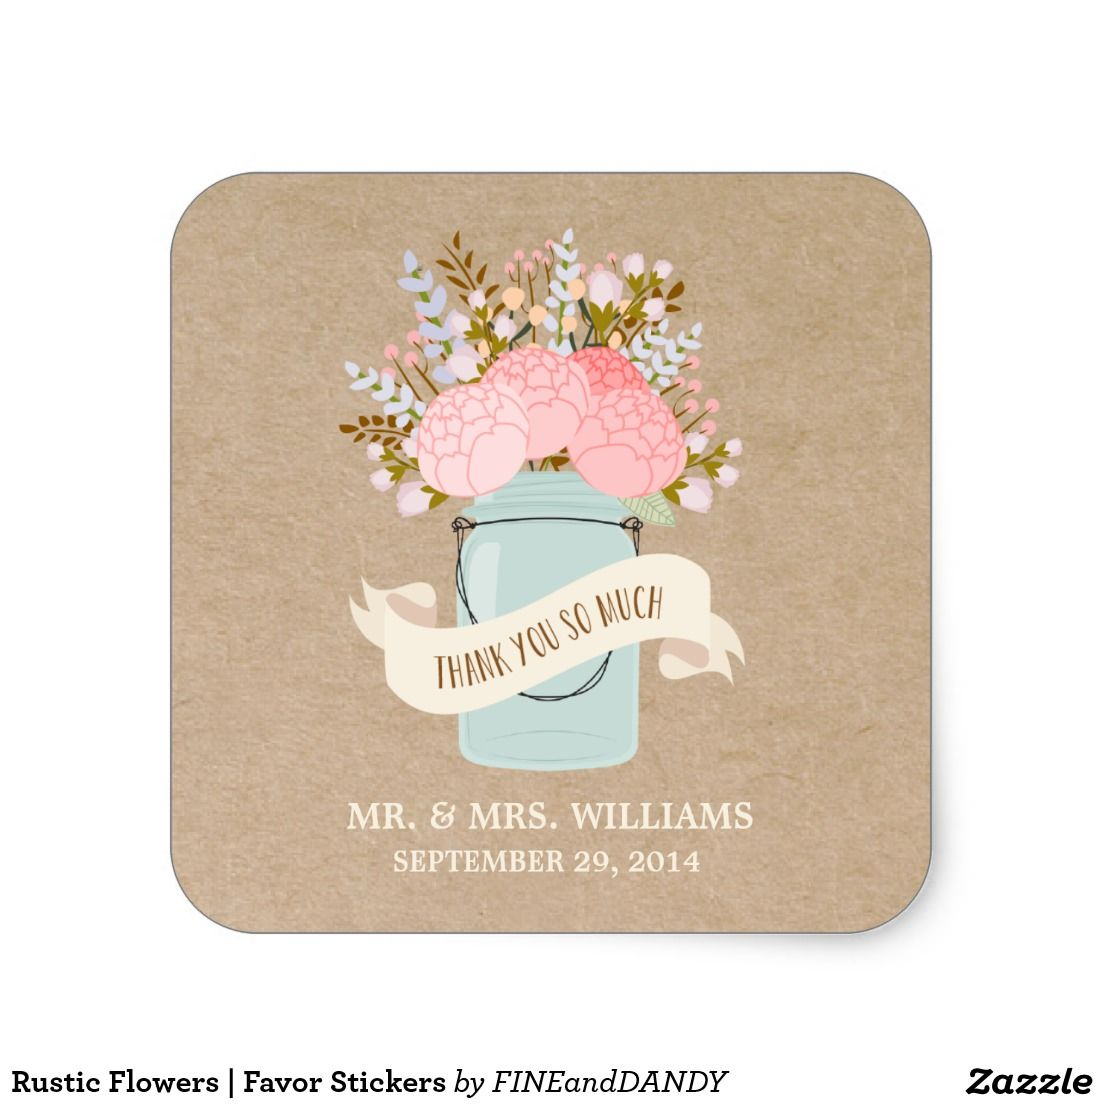 Rustic Flowers | Favour Stickers